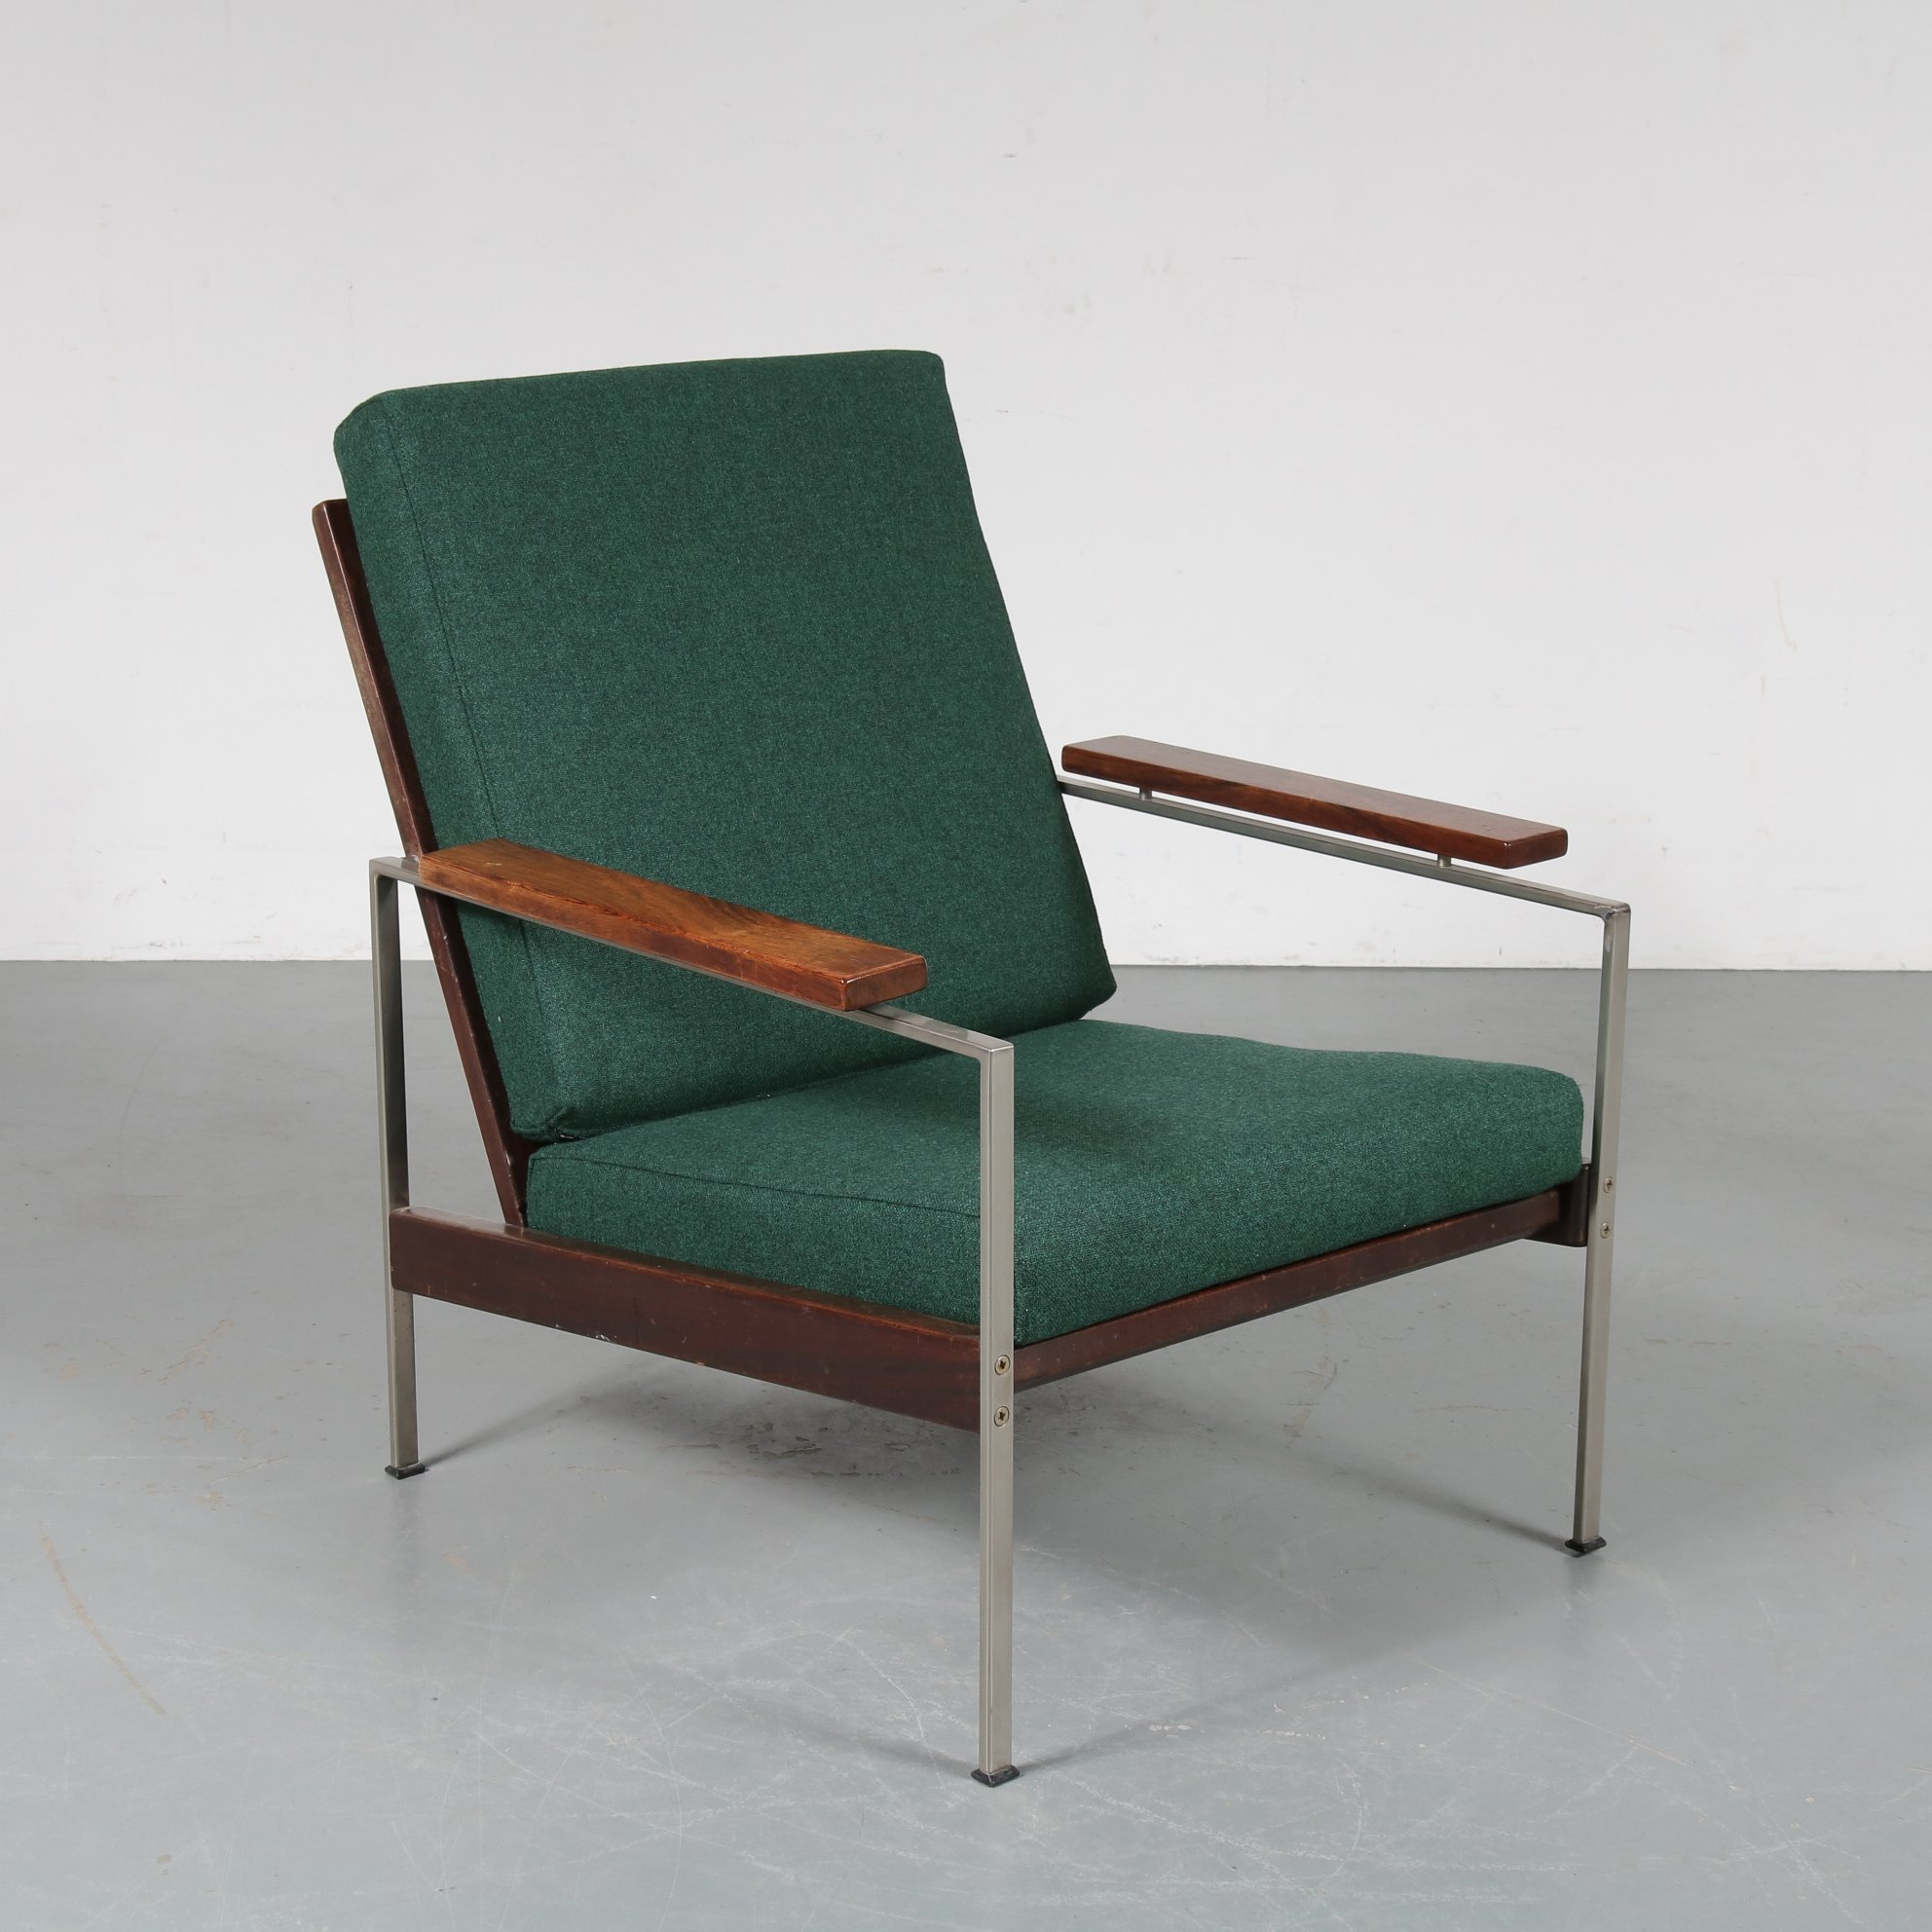 Pleasing Modern Dutch Lounge Chair By Rob Parry For Gelderland 1960S Gmtry Best Dining Table And Chair Ideas Images Gmtryco